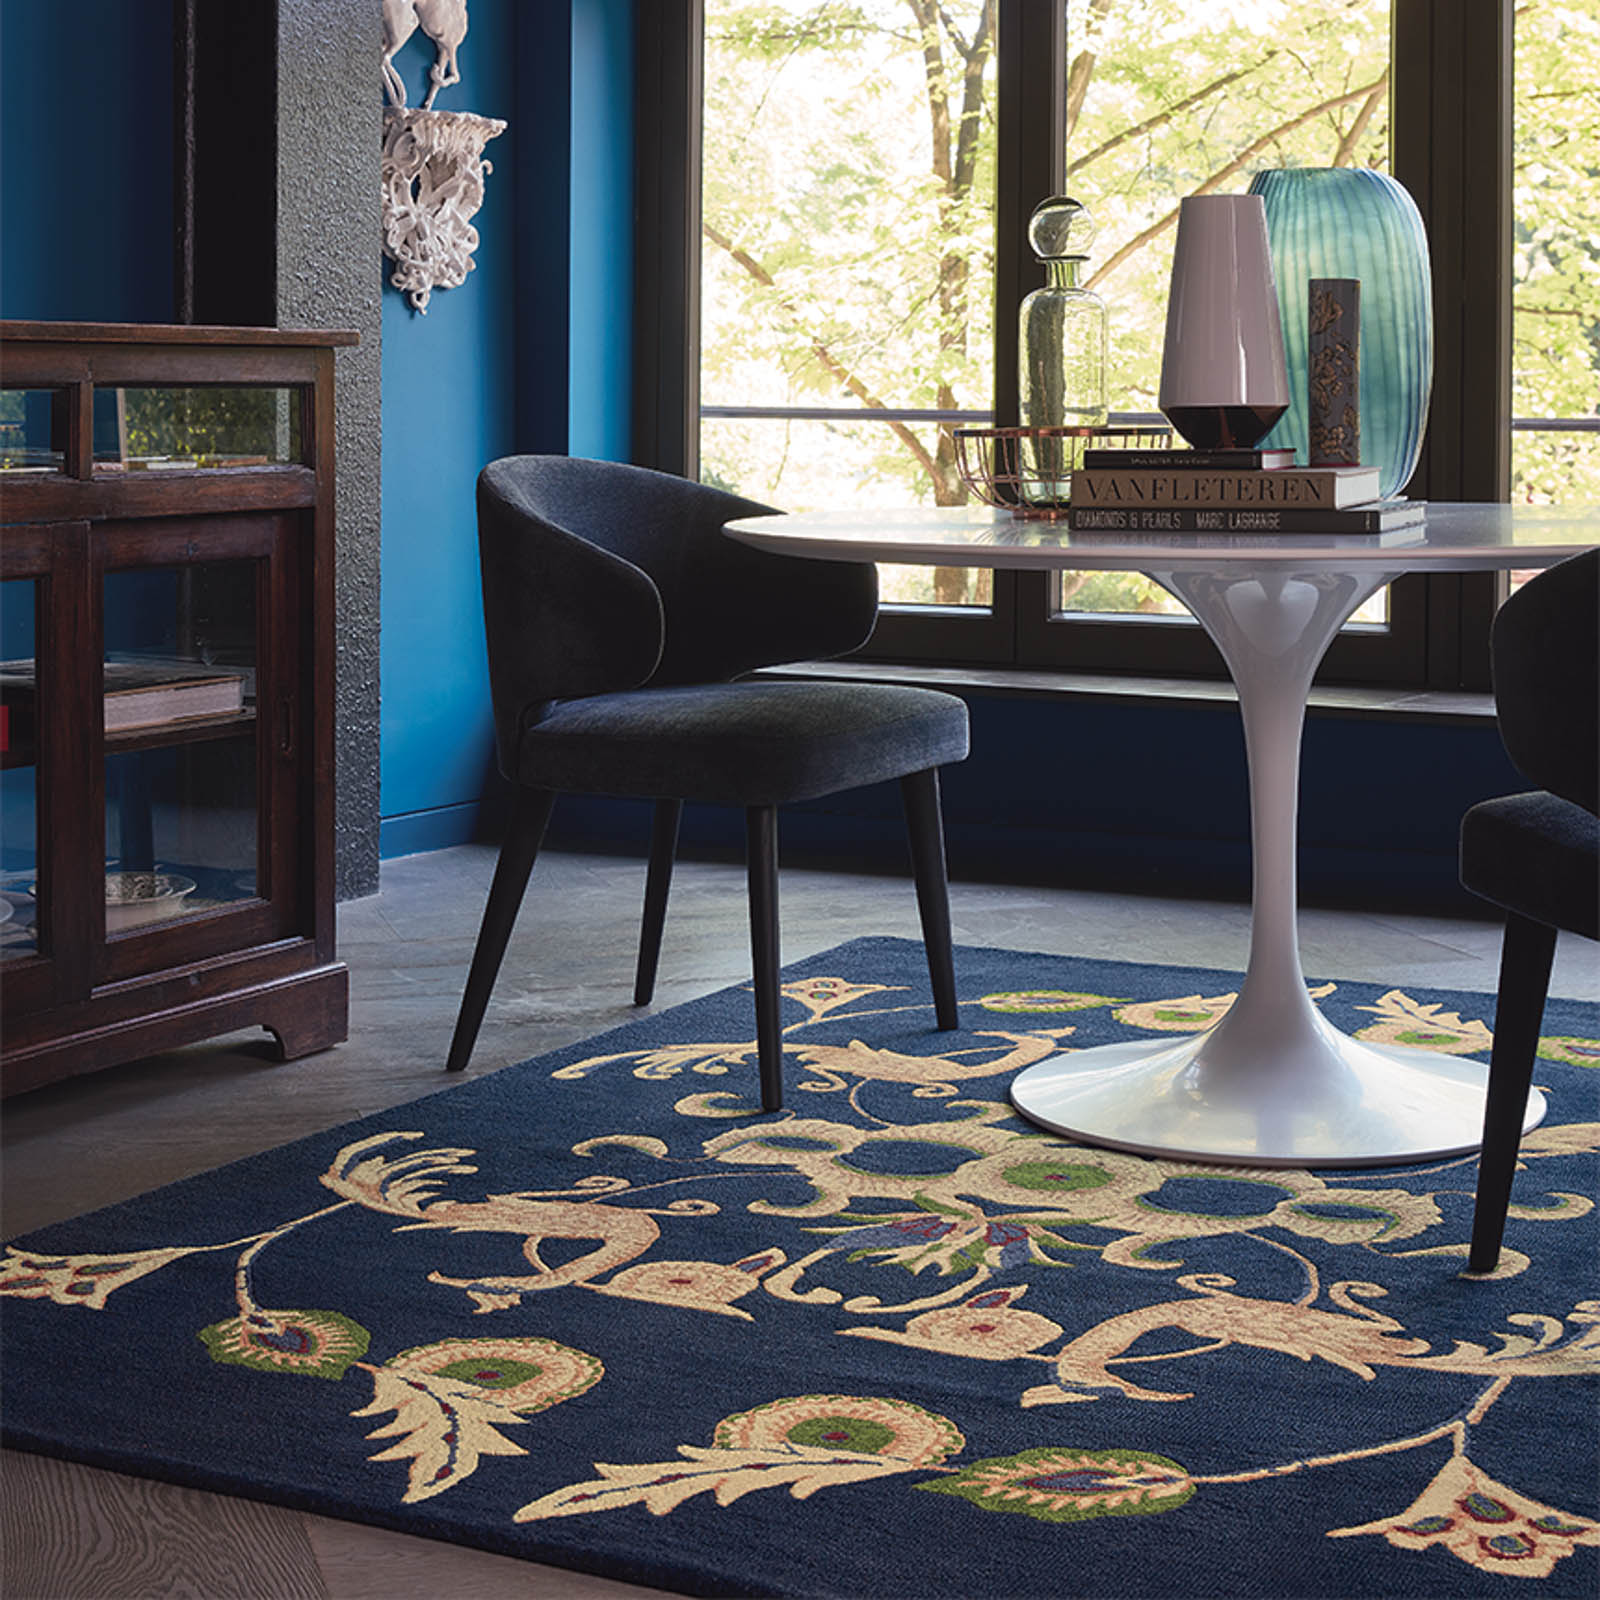 wedgwood designer rug brand from the rug seller